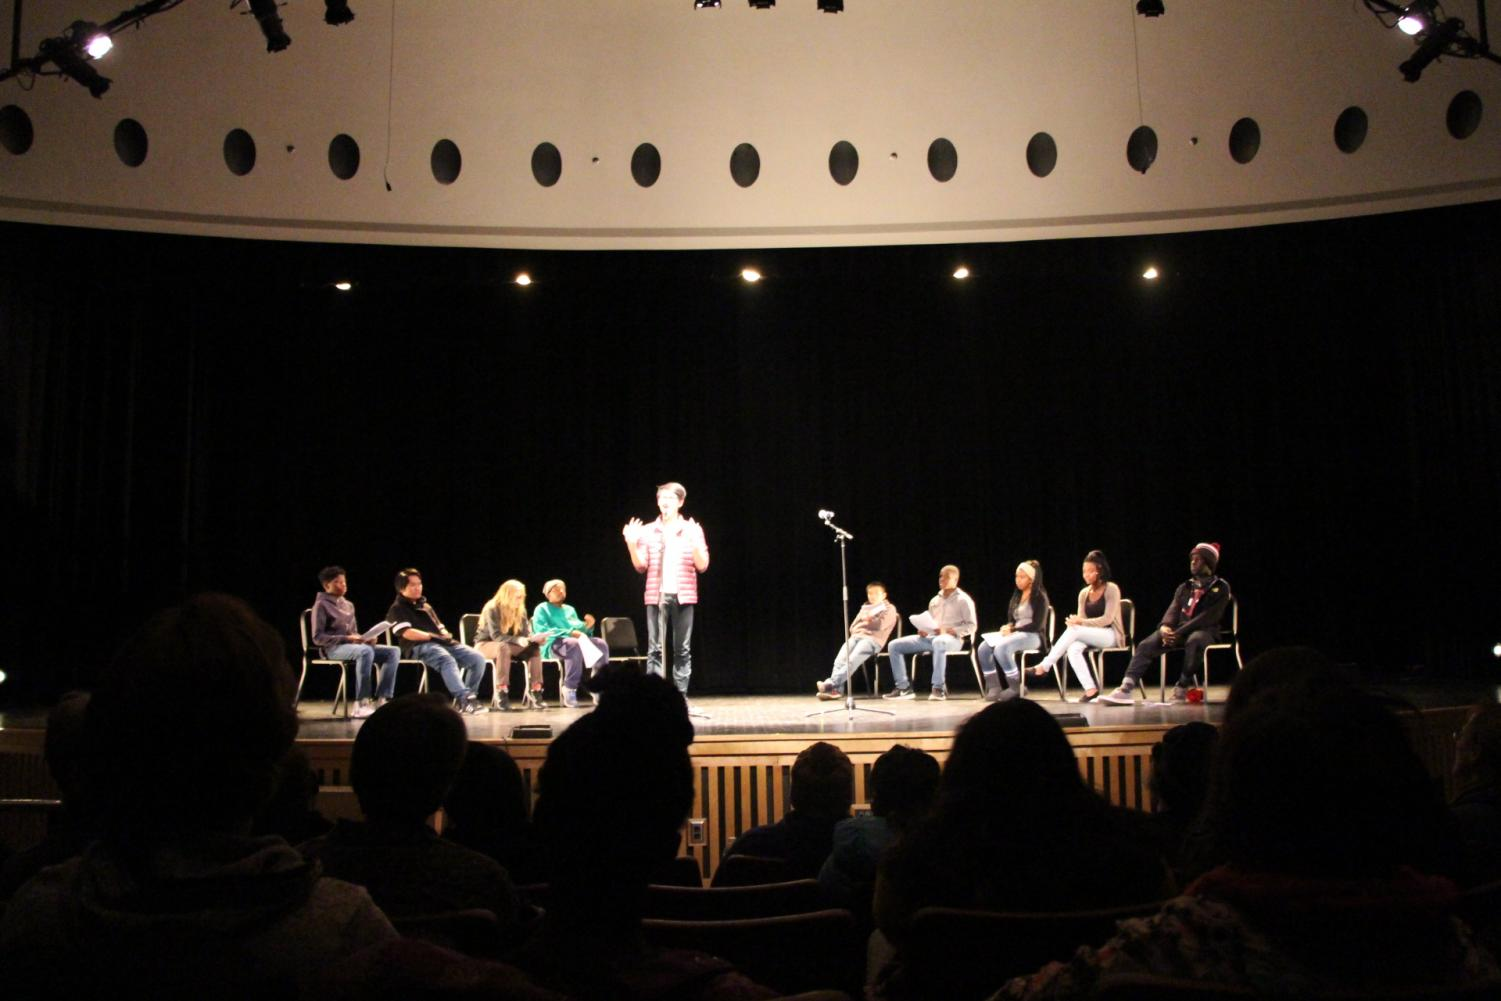 On Thursday, December 14th, the second annual spoken word/dance show graced the stage of South High.